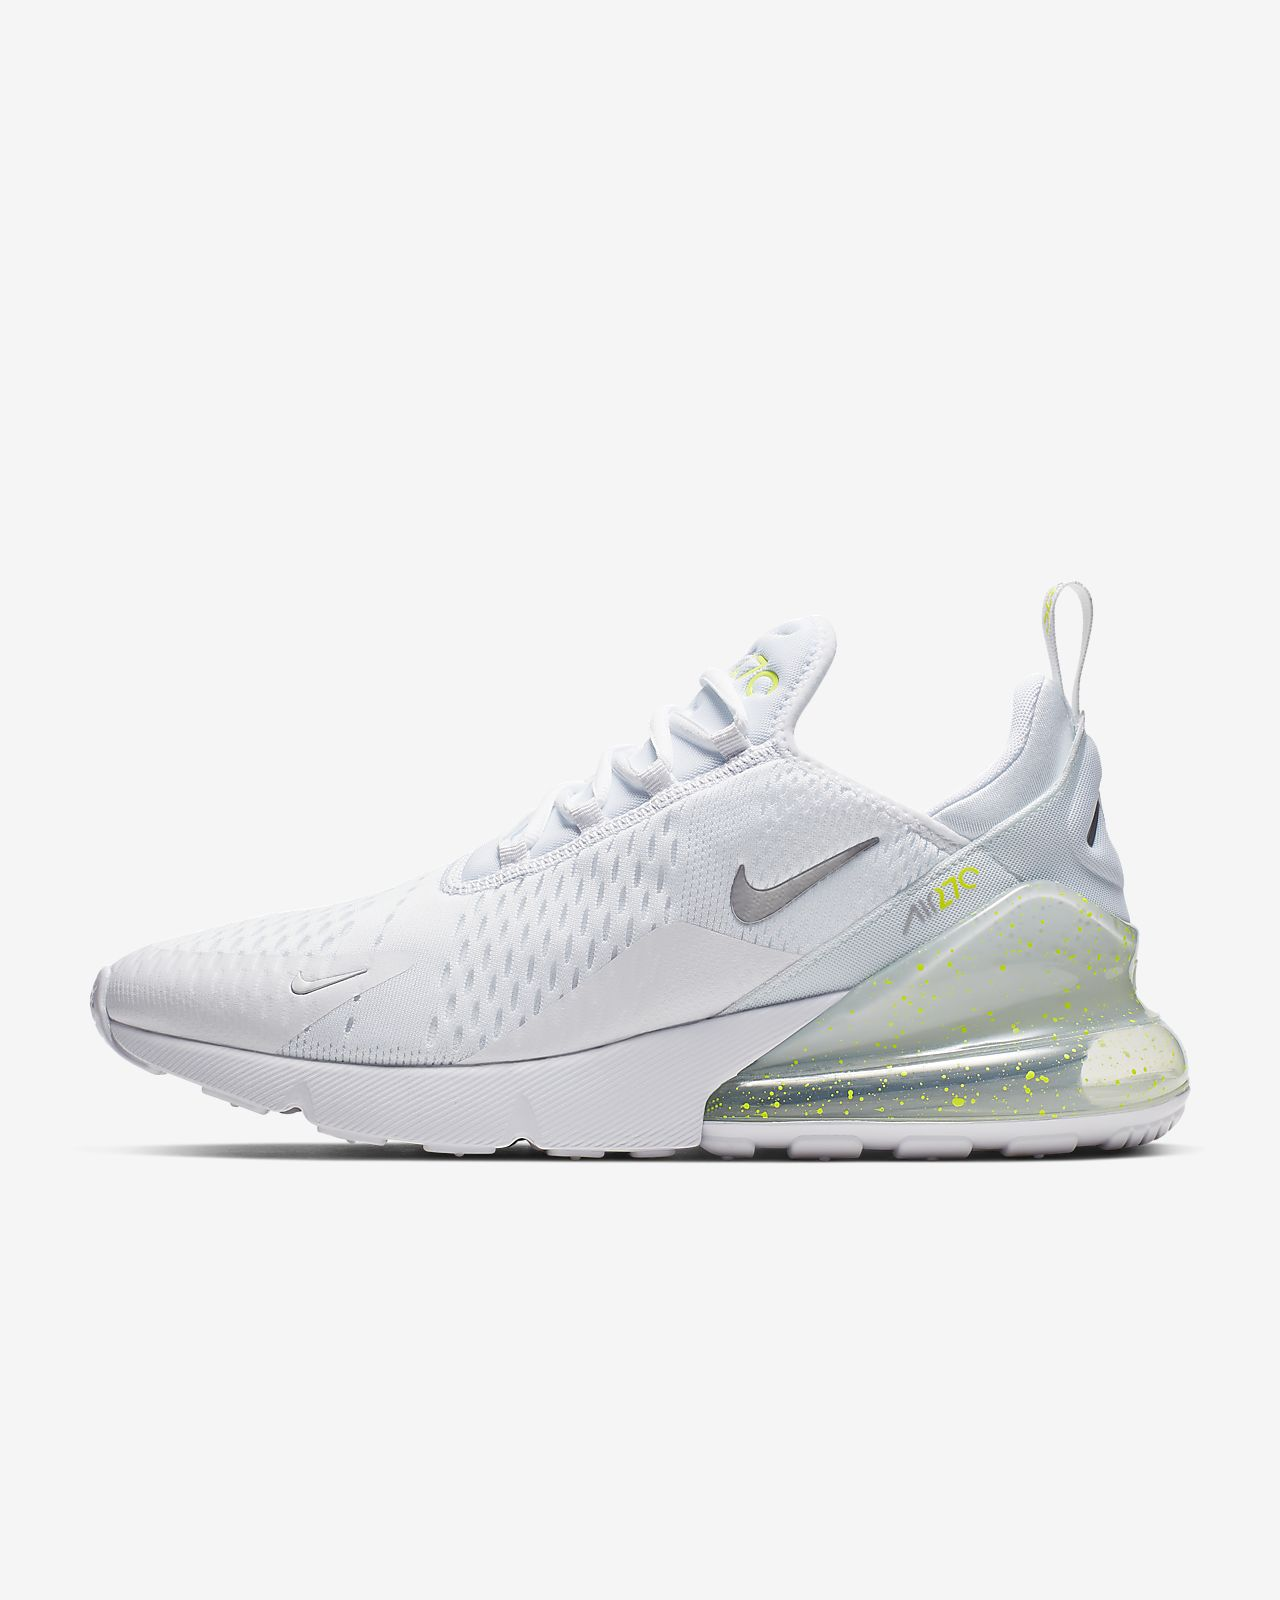 cheap for discount bed3c e4275 ... Chaussure Nike Air Max 270 pour Homme